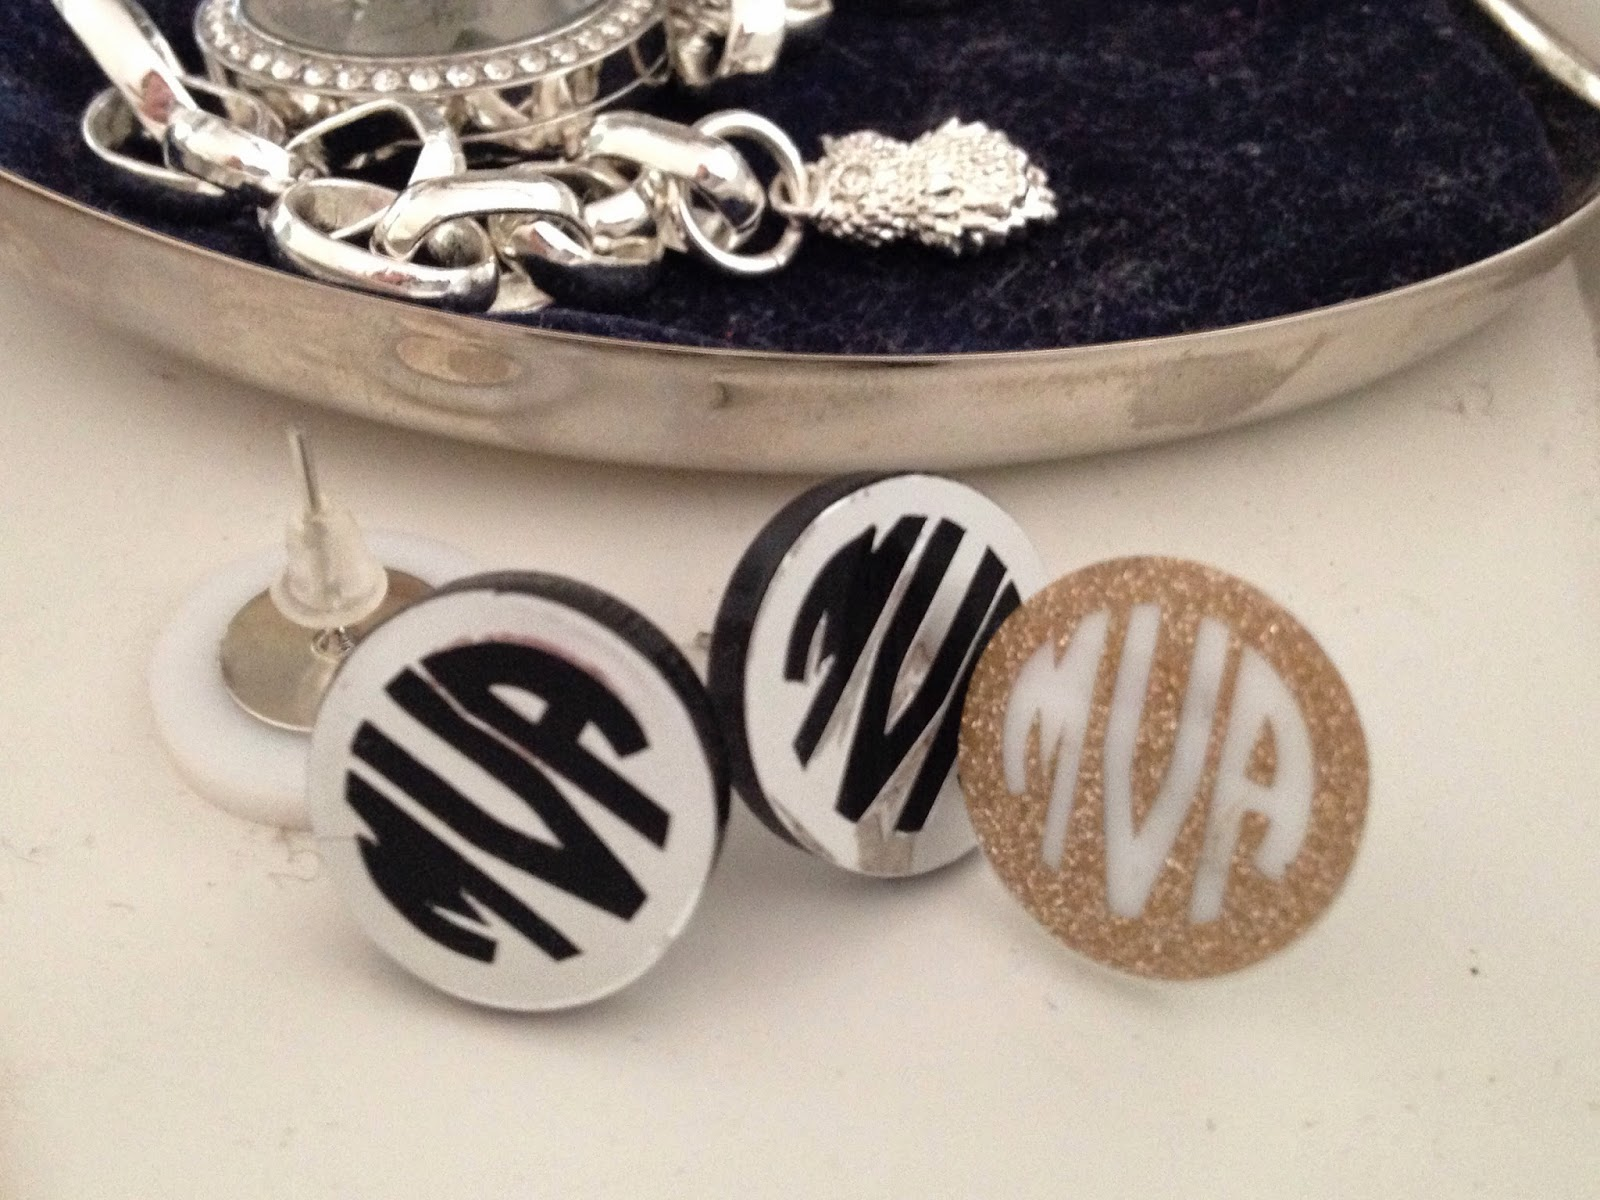 Tiny, small, Silhouette designs, tip, cutting, weeding, placing, monogram, earrings